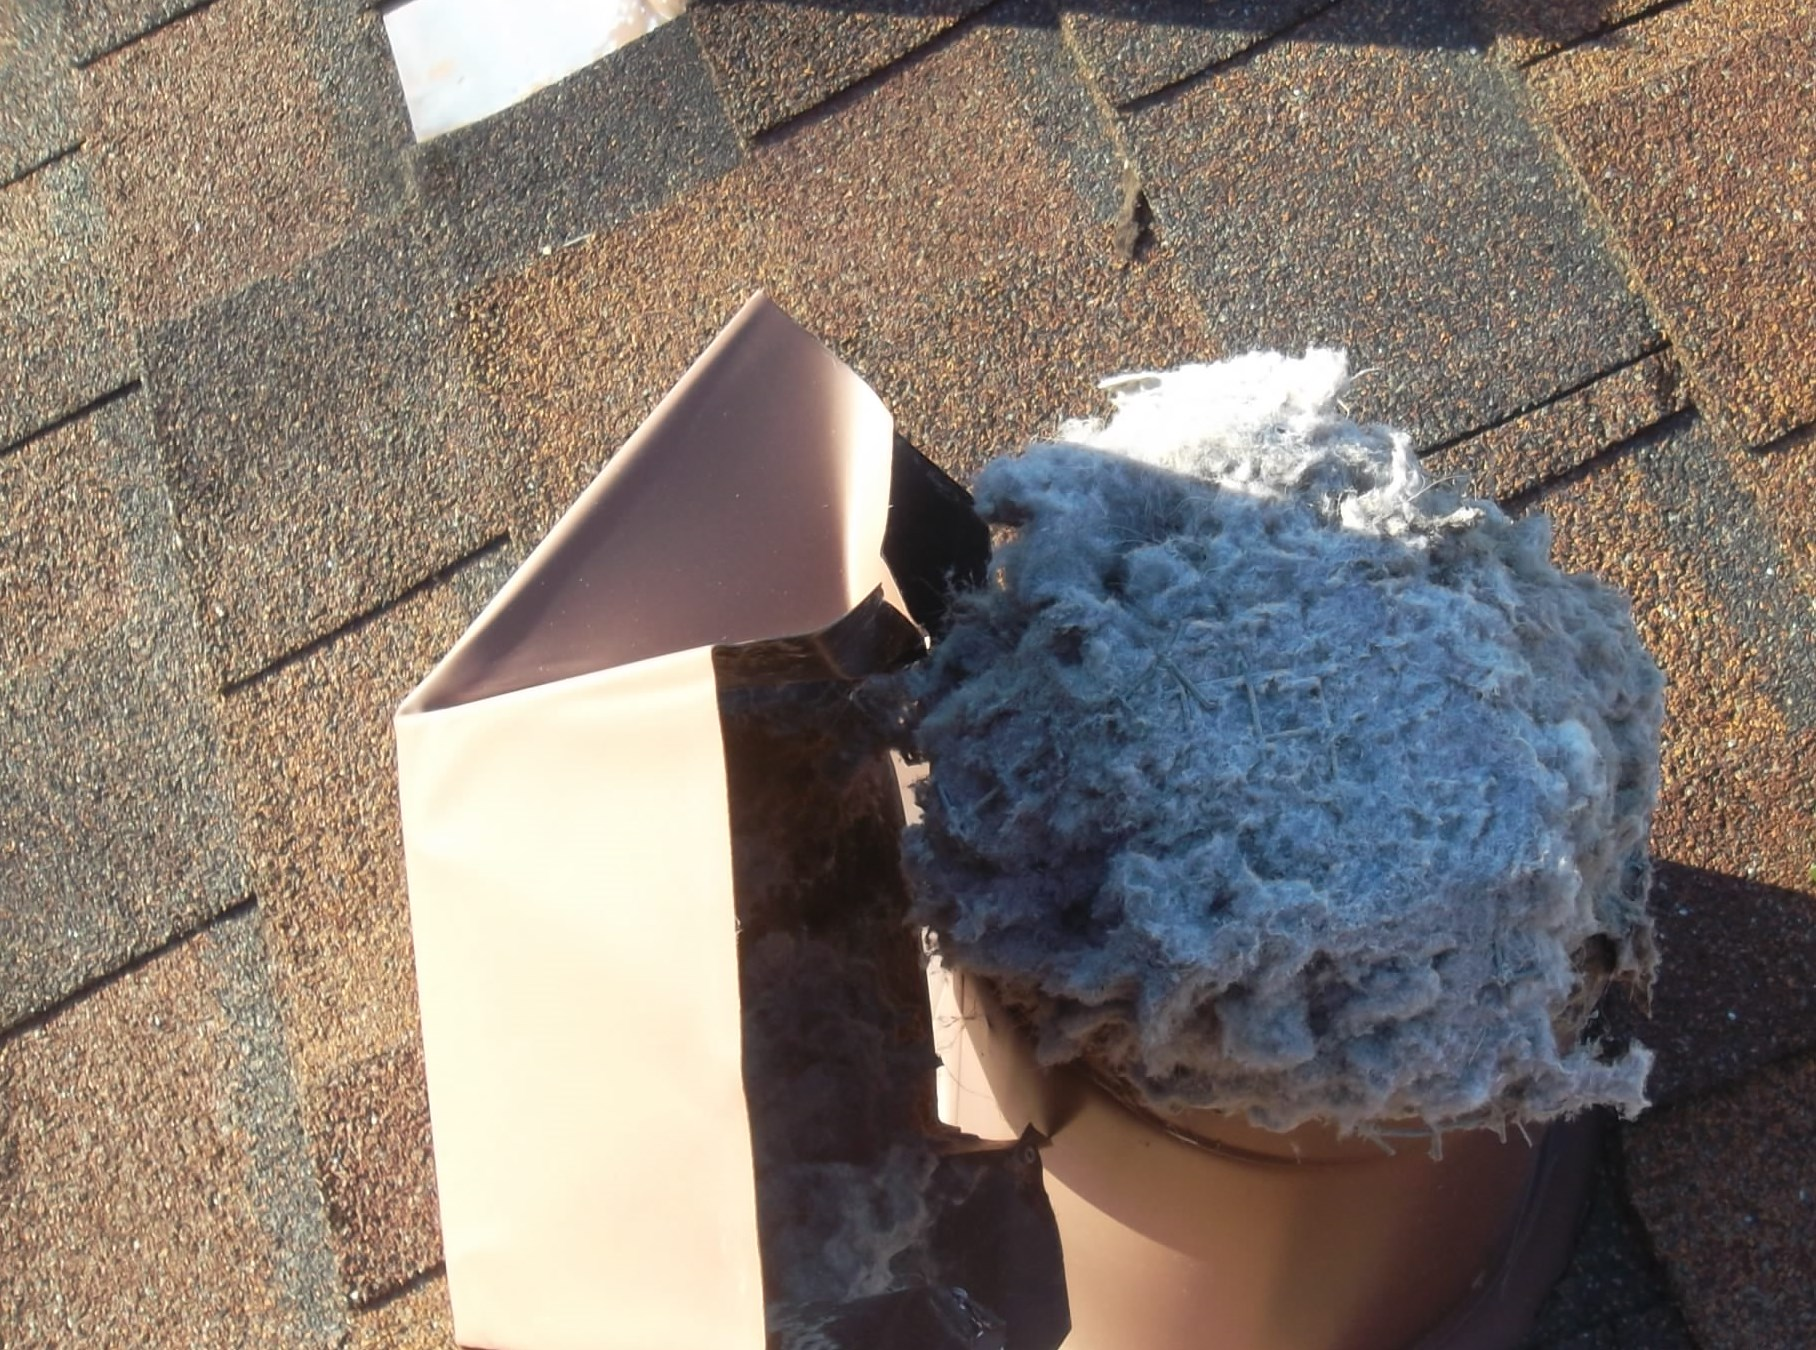 Dryer Vent Being Cleaned